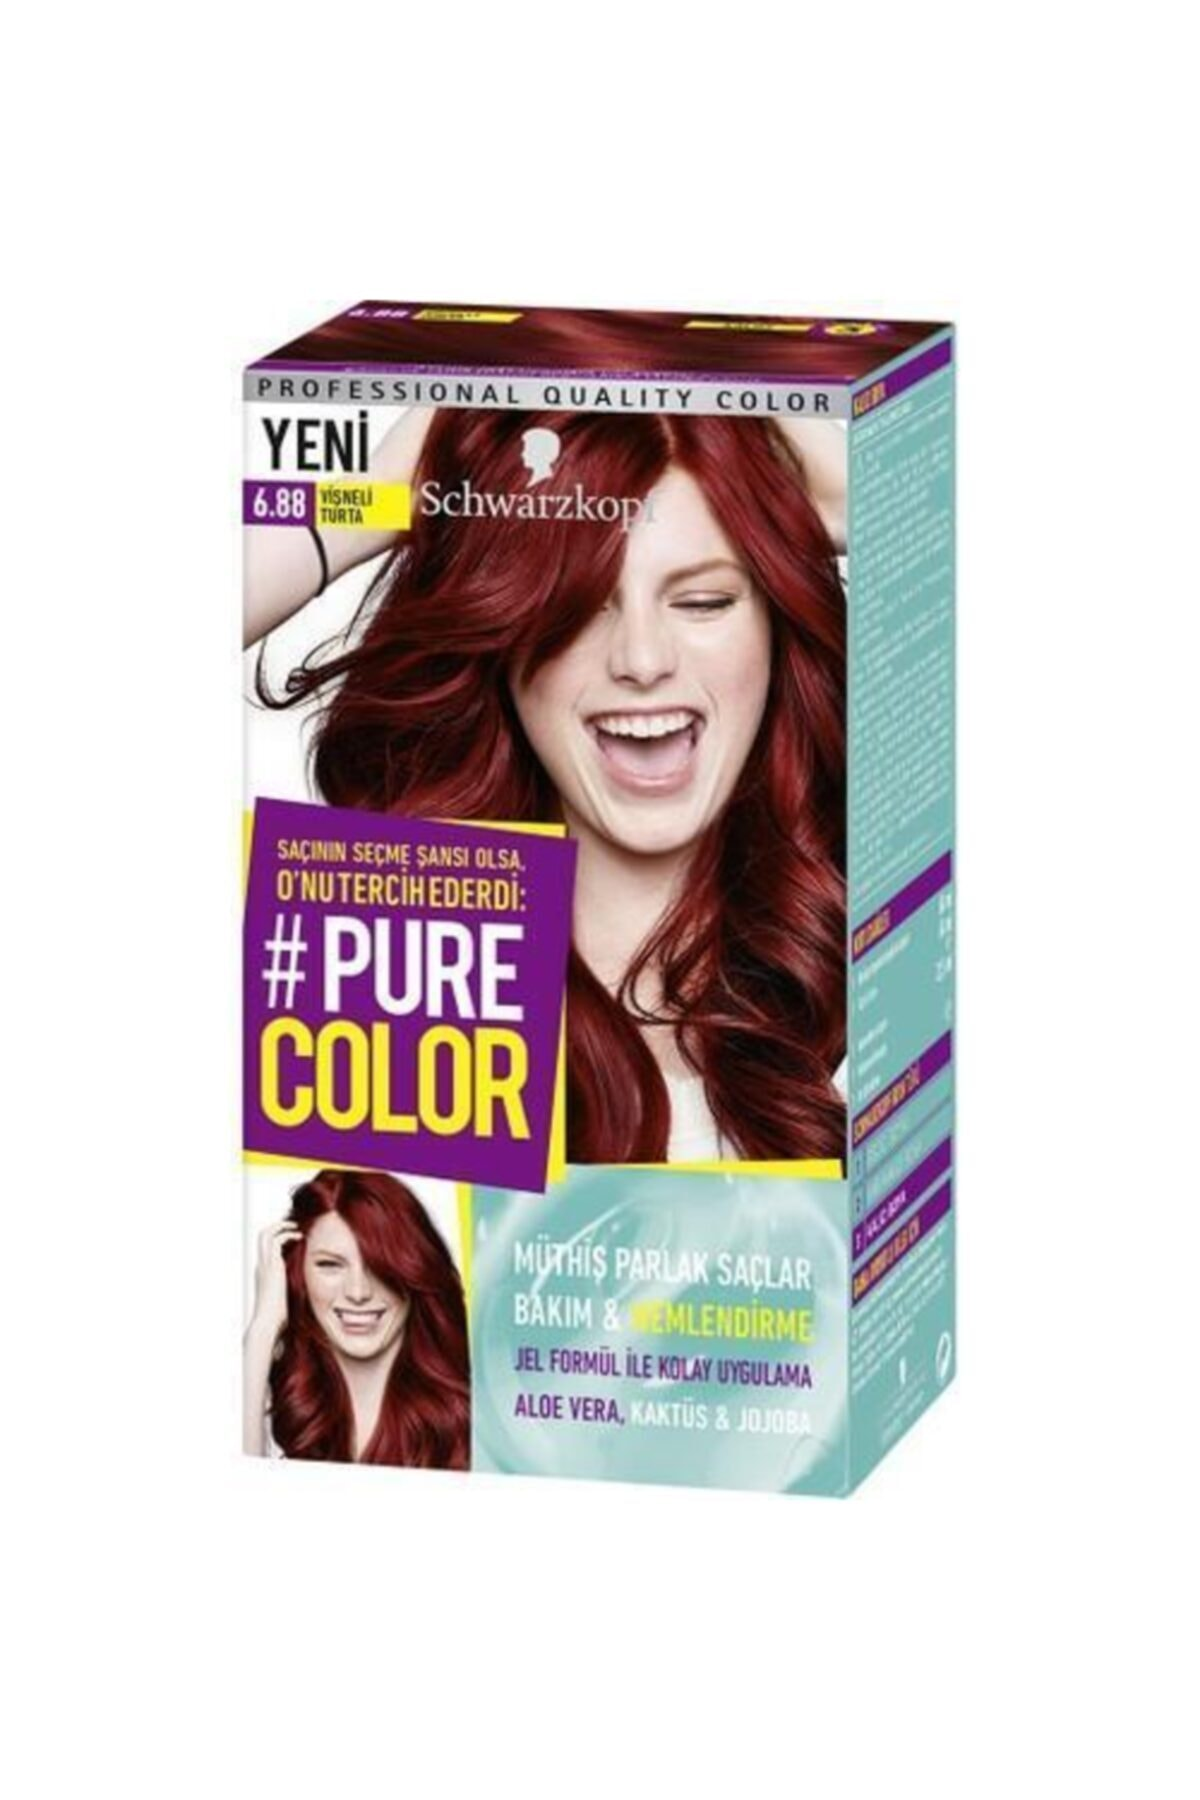 PURE COLOR 6.88 Vişneli Turta Saç Boyası 1